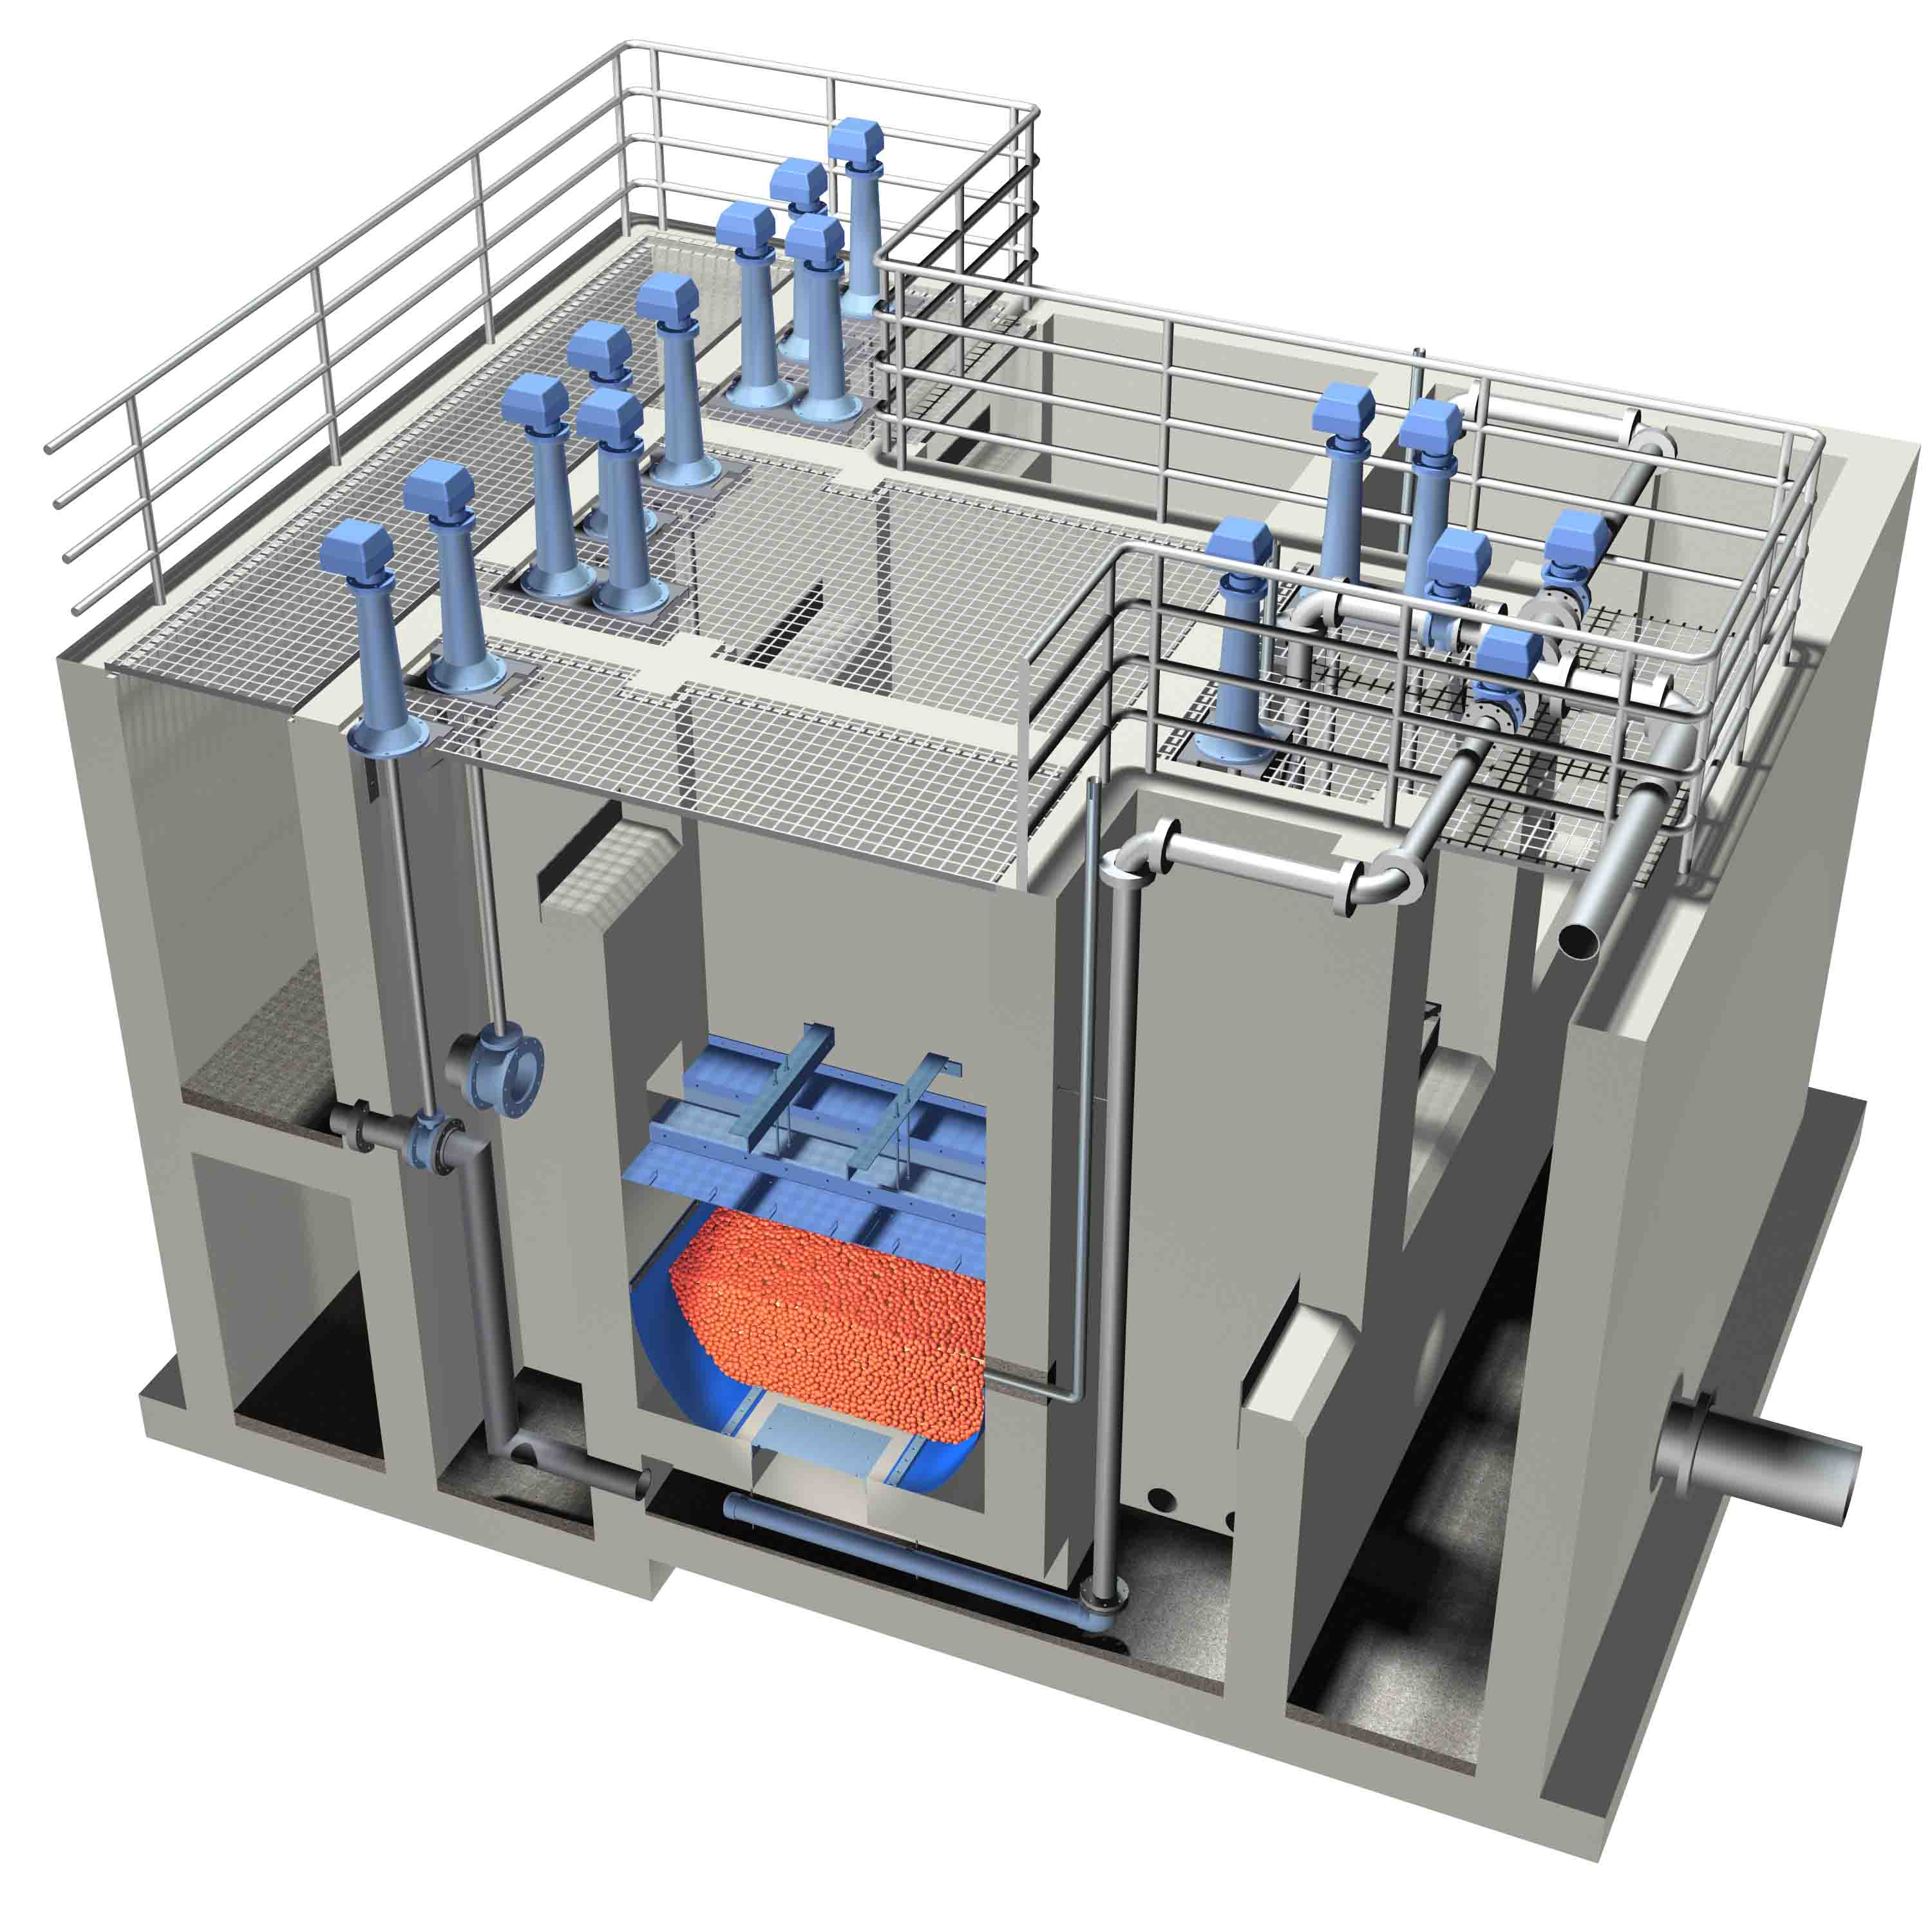 wastewater_treatment_and_collection_systems.jpg